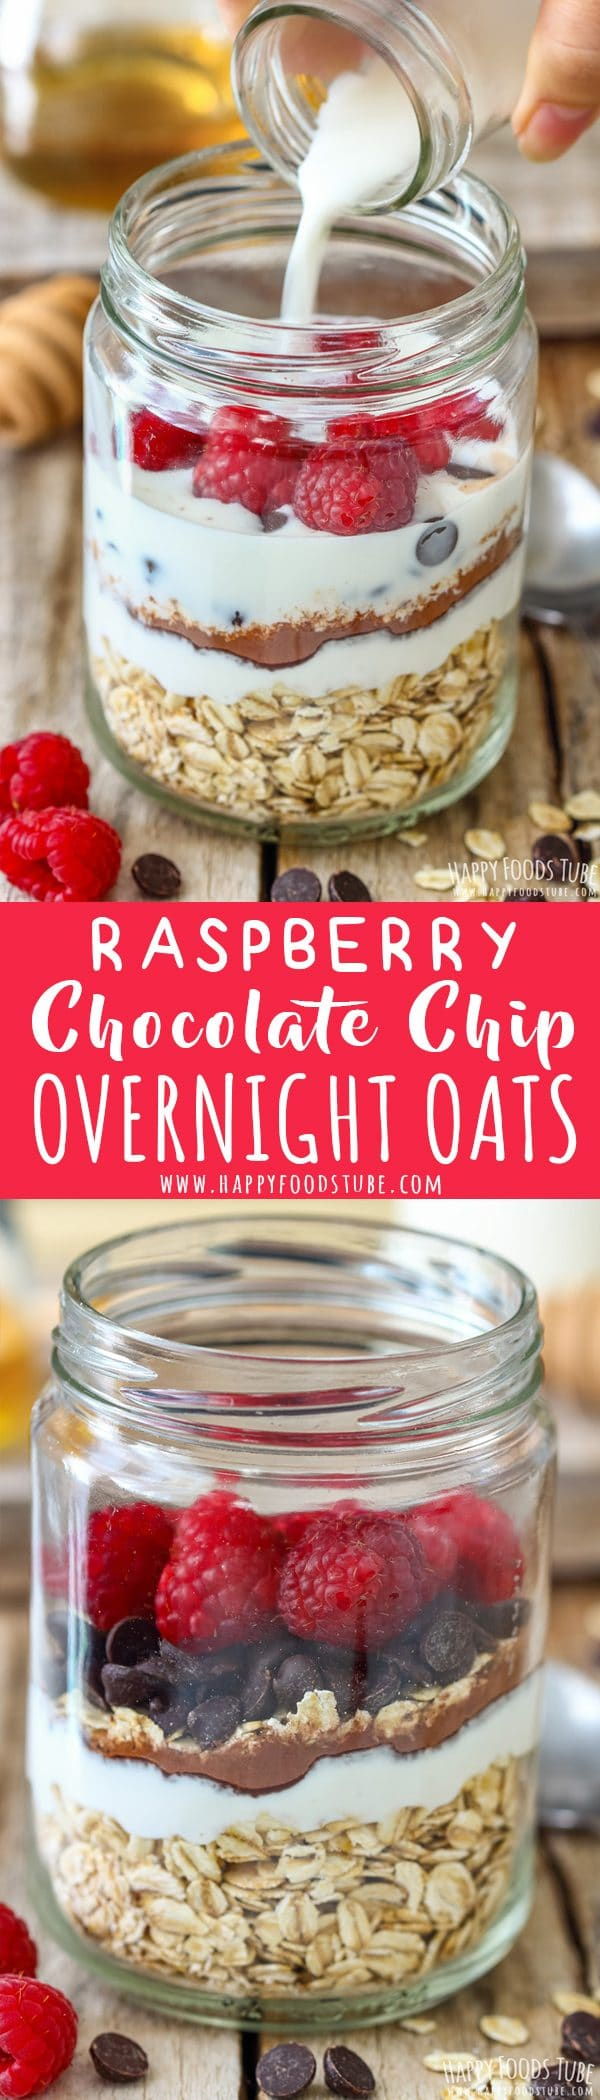 Raspberry Chocolate Chip Overnight Oats Picture Collage